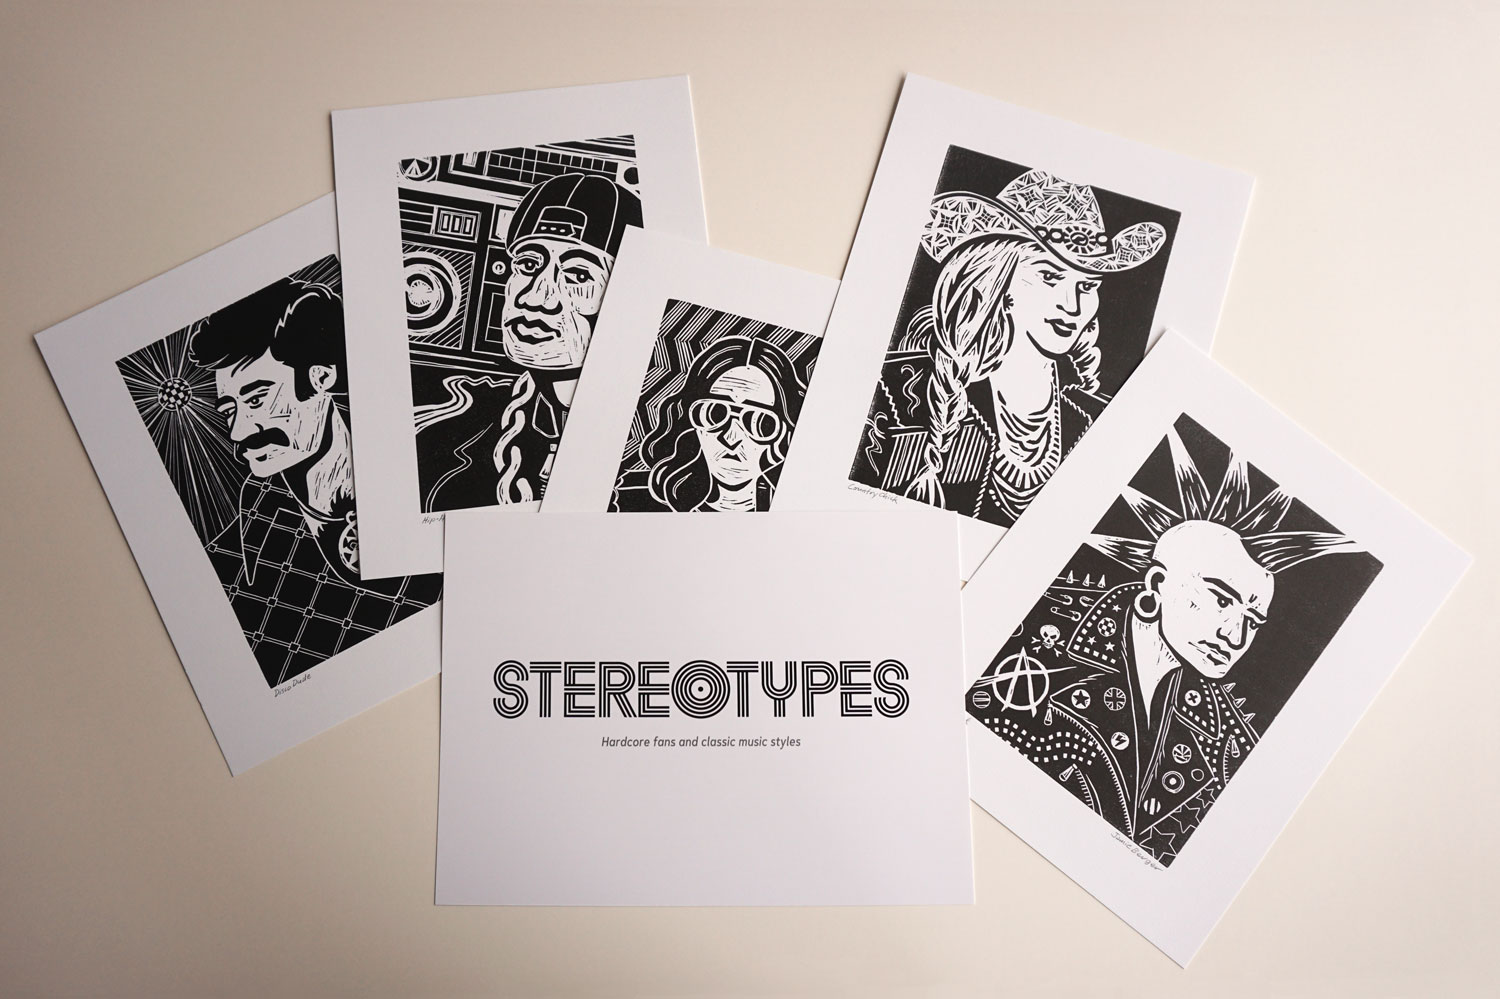 The Stereotypes print set.